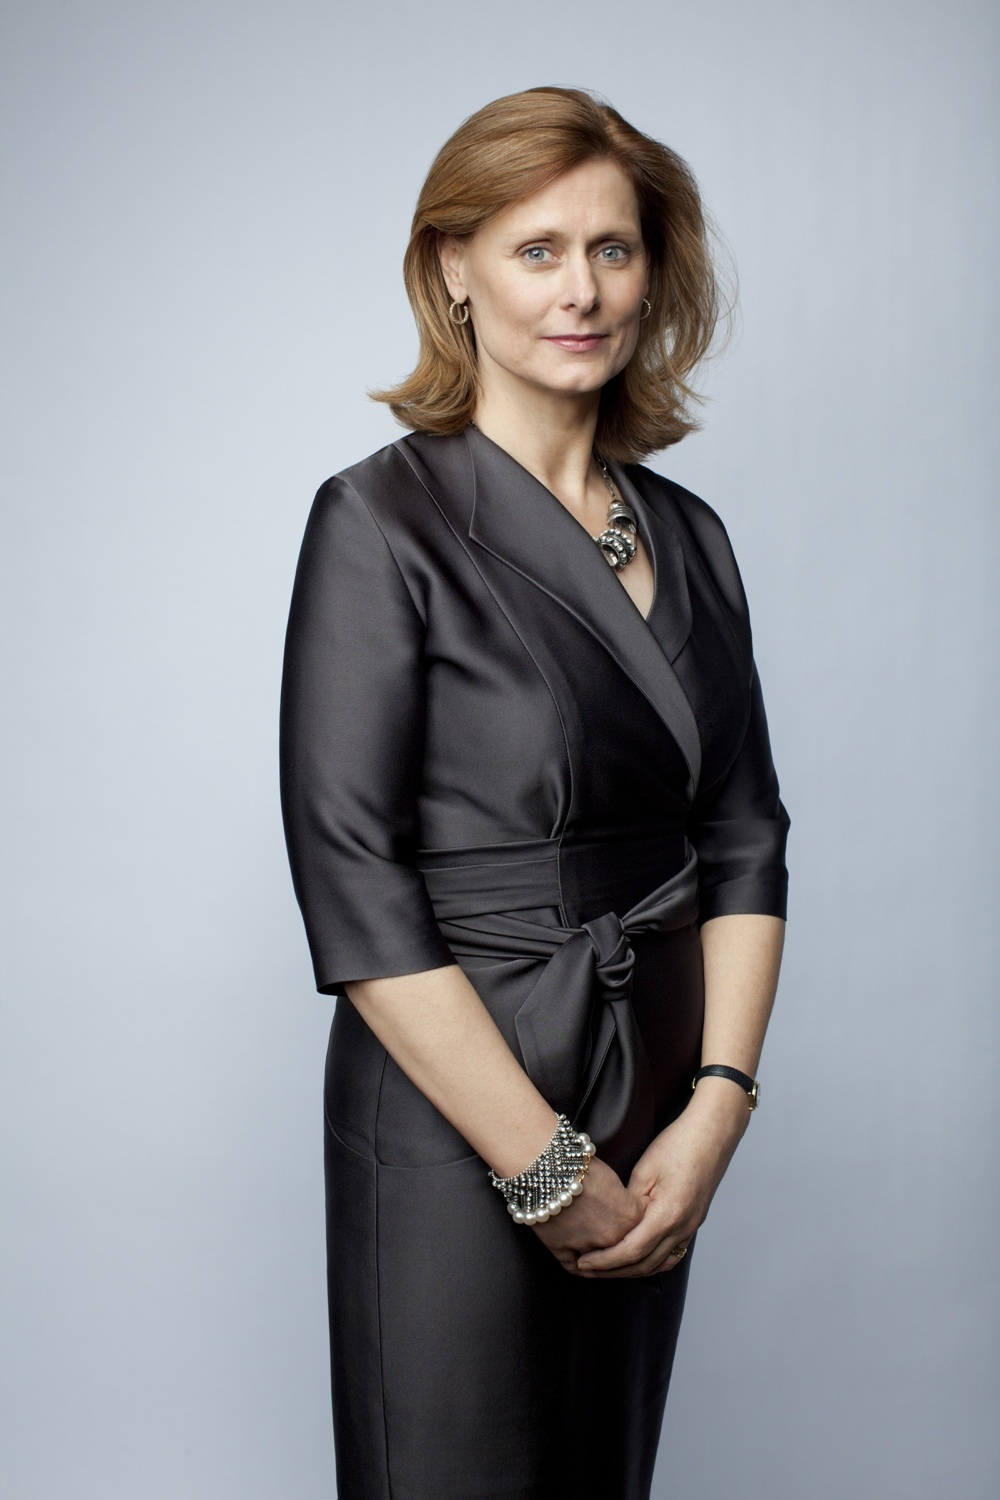 WIE Symposium To Be Hosted by Sarah Brown, Donna Karan and Arianna Huffington